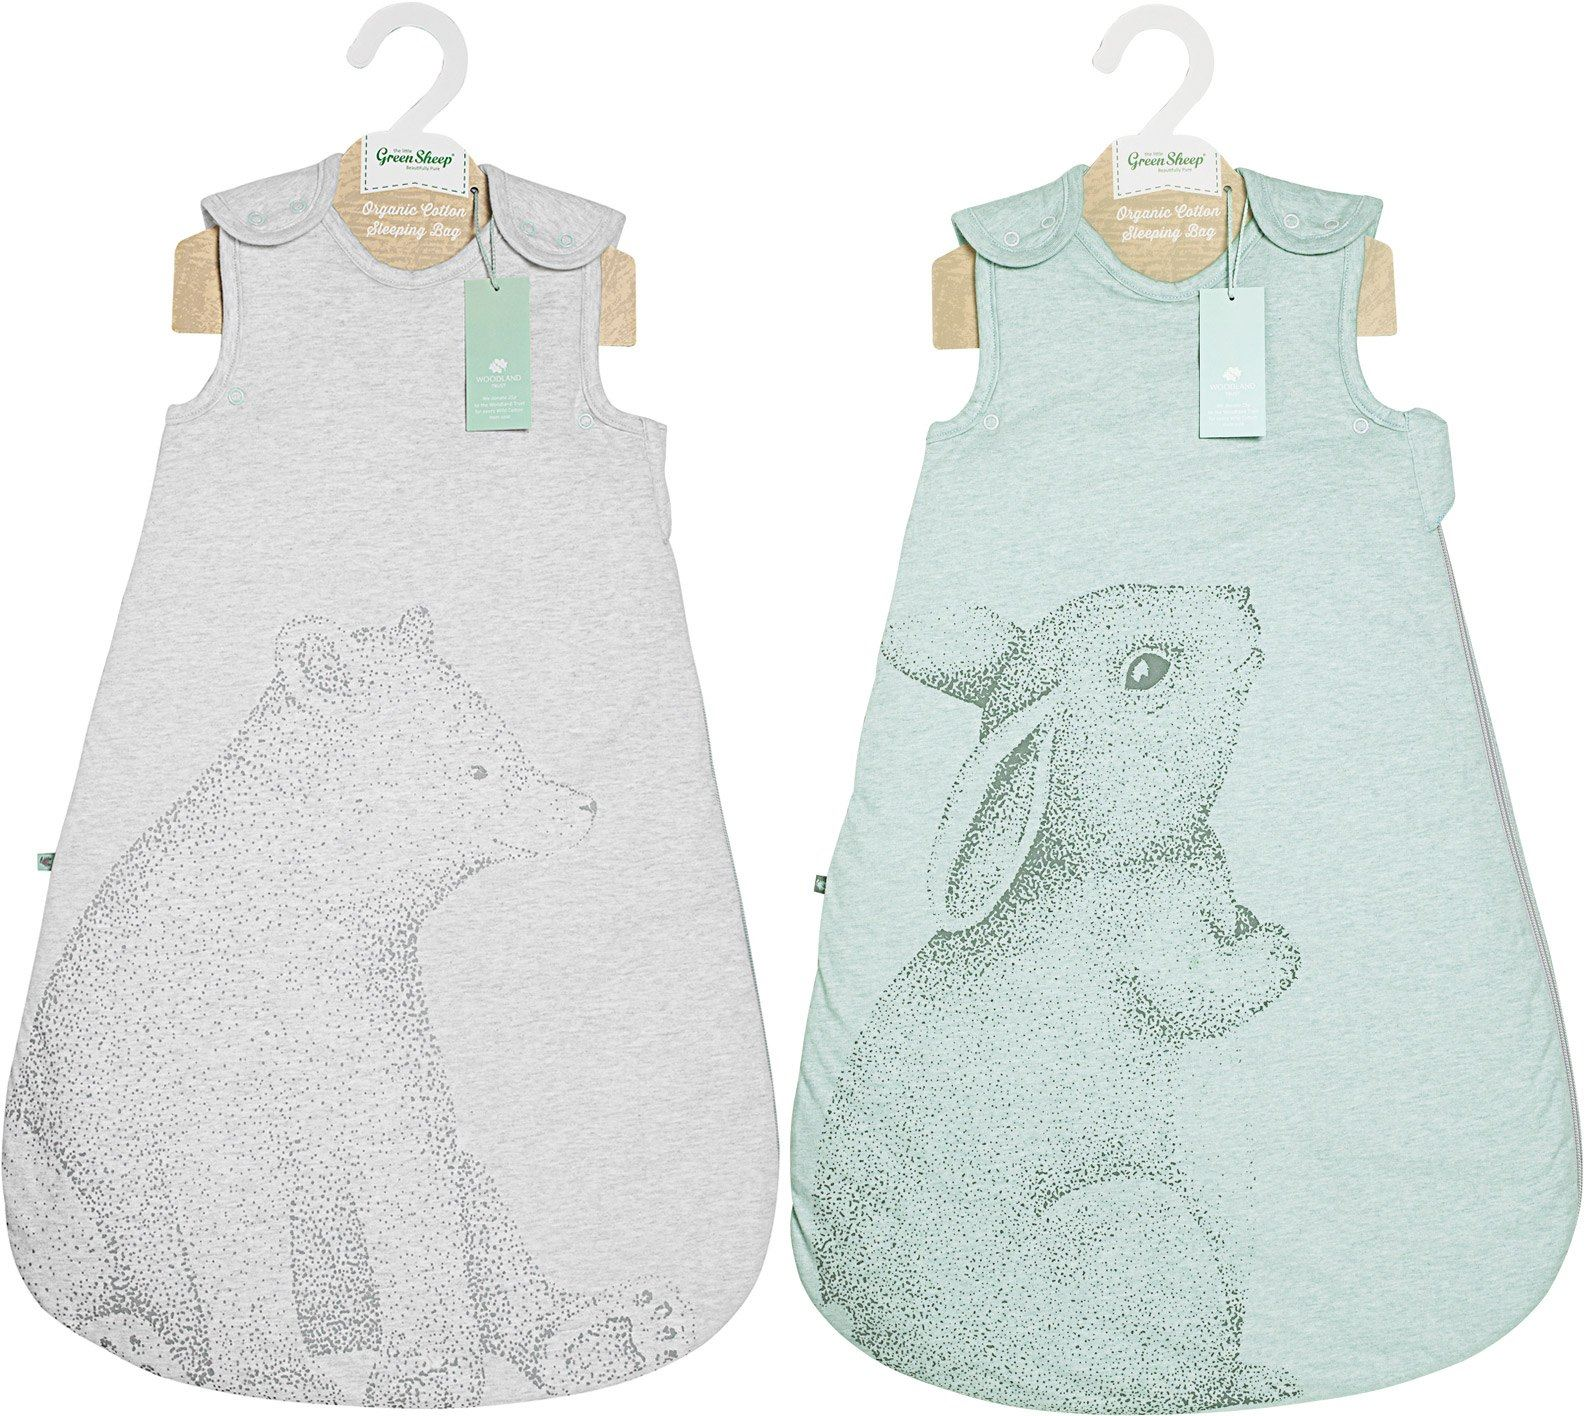 Cotton Baby Sleeping Bag Details About The Little Green Sheep Wild Cotton Sleeping Bag 2 5 Tog Baby Sleeping New